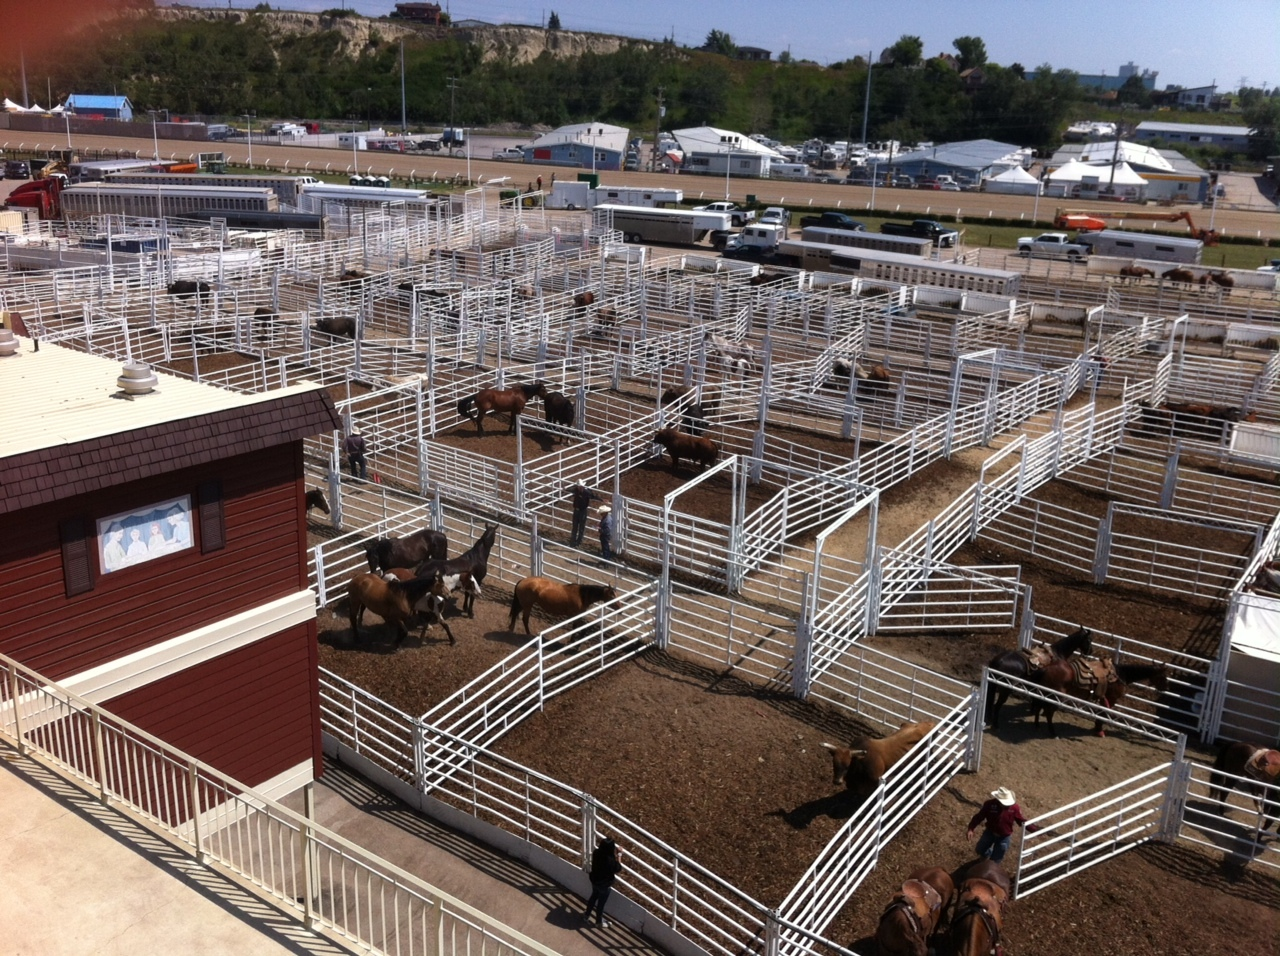 Behind the infield corrals herd the animals into the infield for their performances.  At the Stampede humans and animals are treated equally! Everyone is well fed, well watered and winners get prizes.